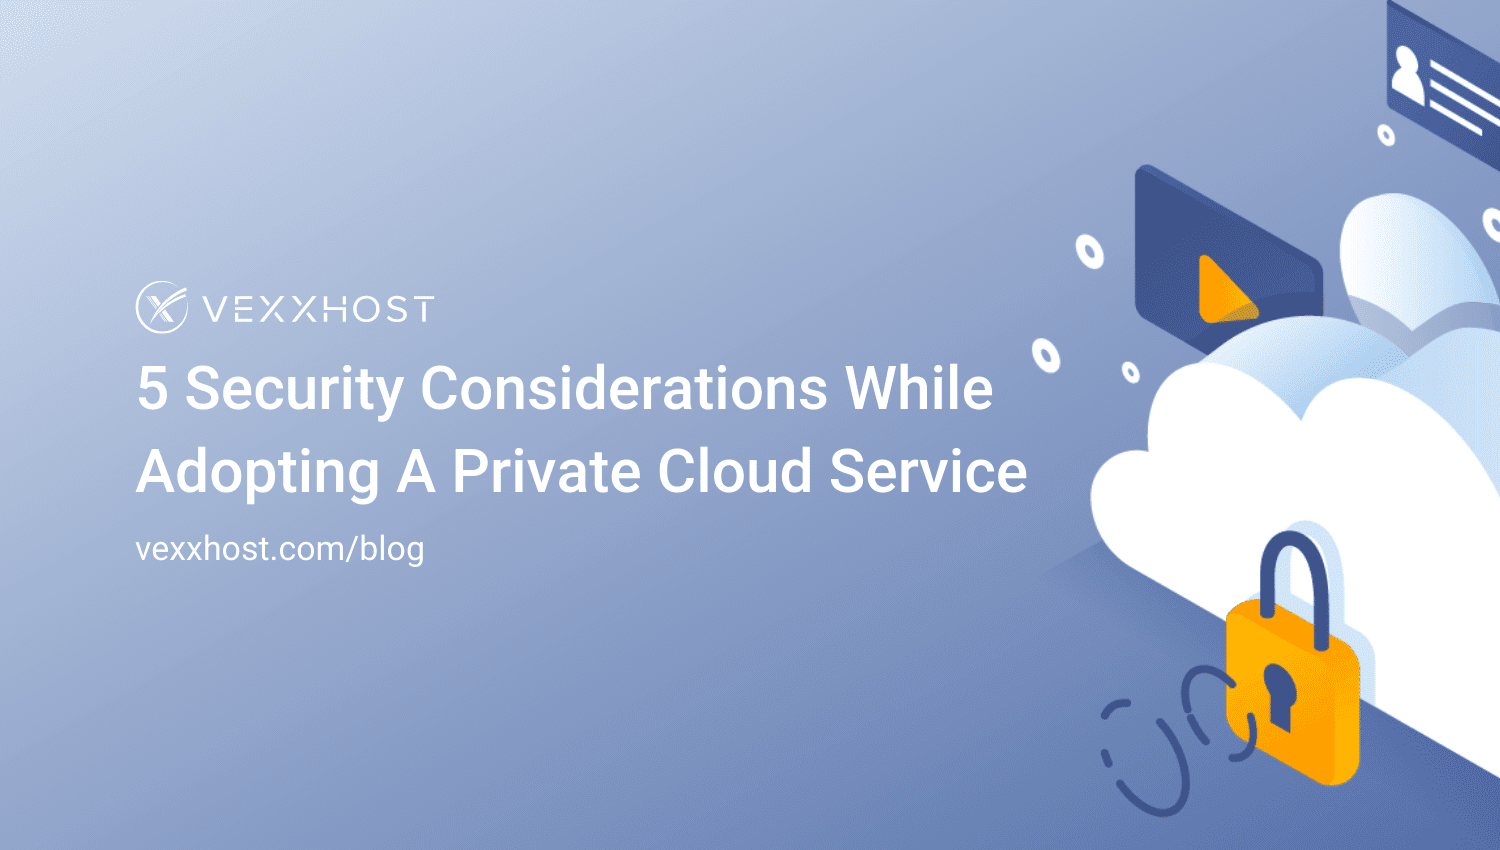 5-Security-Considerations-While-Adopting-A-Private-Cloud-Service